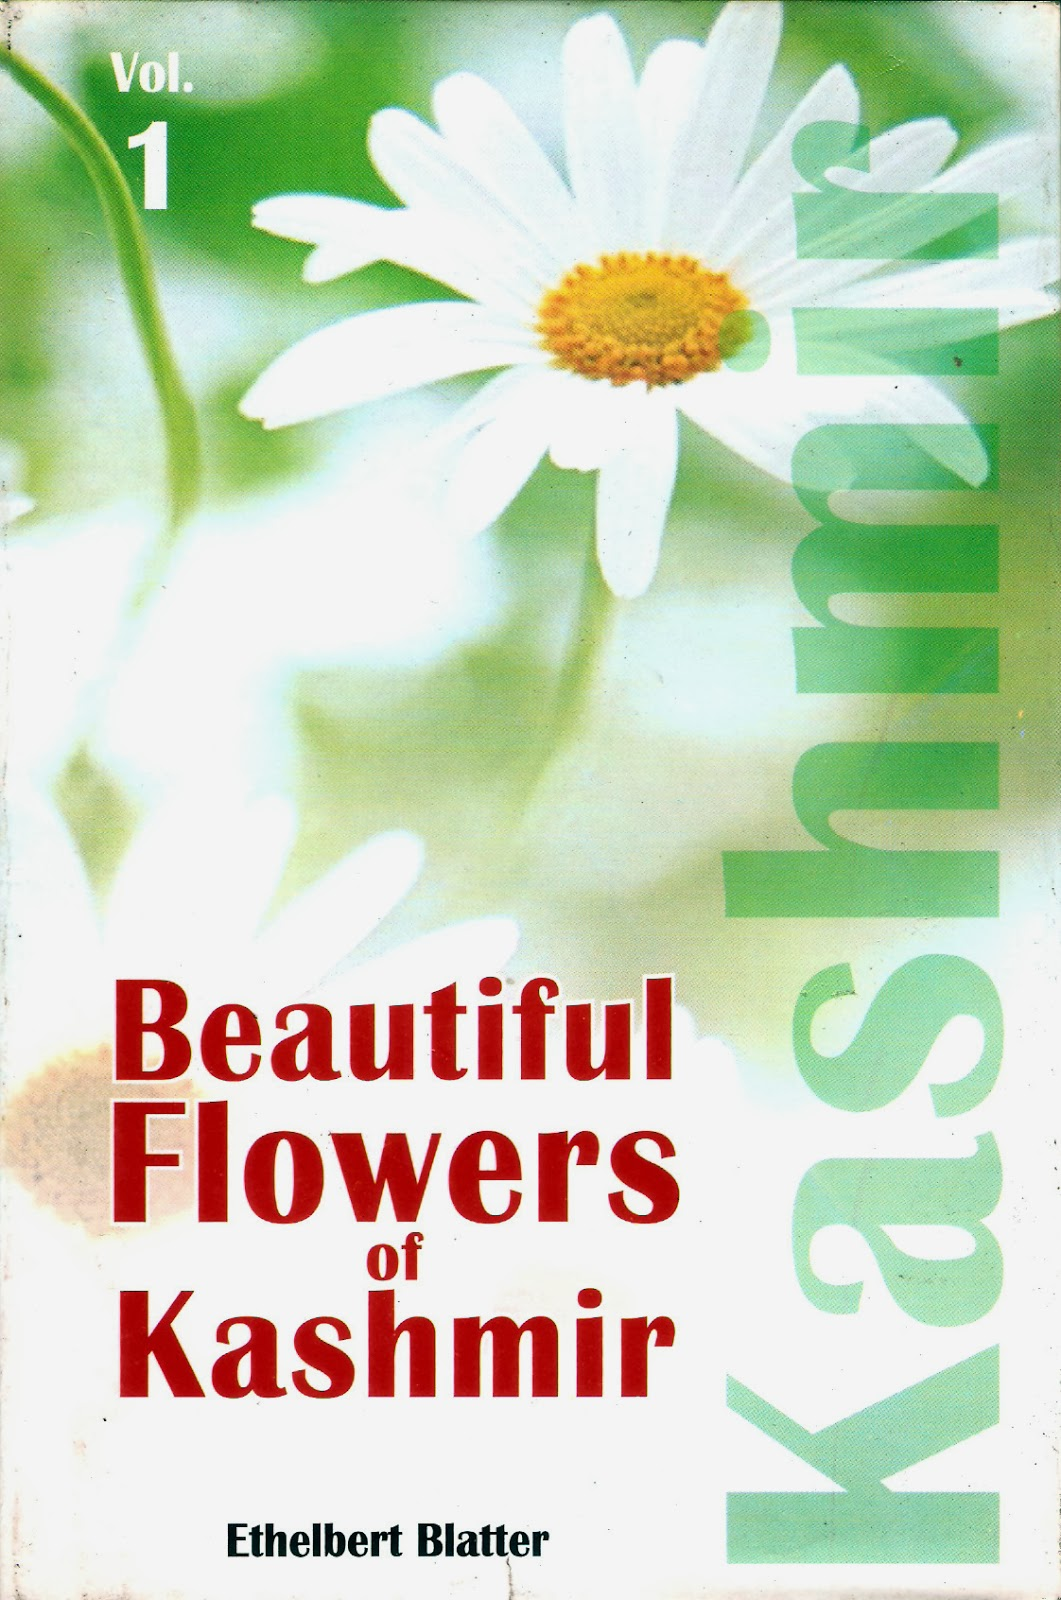 Beautiful flowers of kashmir by ethelbert blatter they did not write much about the flowers of kashmir but the author of this book has written a full fledged book first of its kind on the most beautiful izmirmasajfo